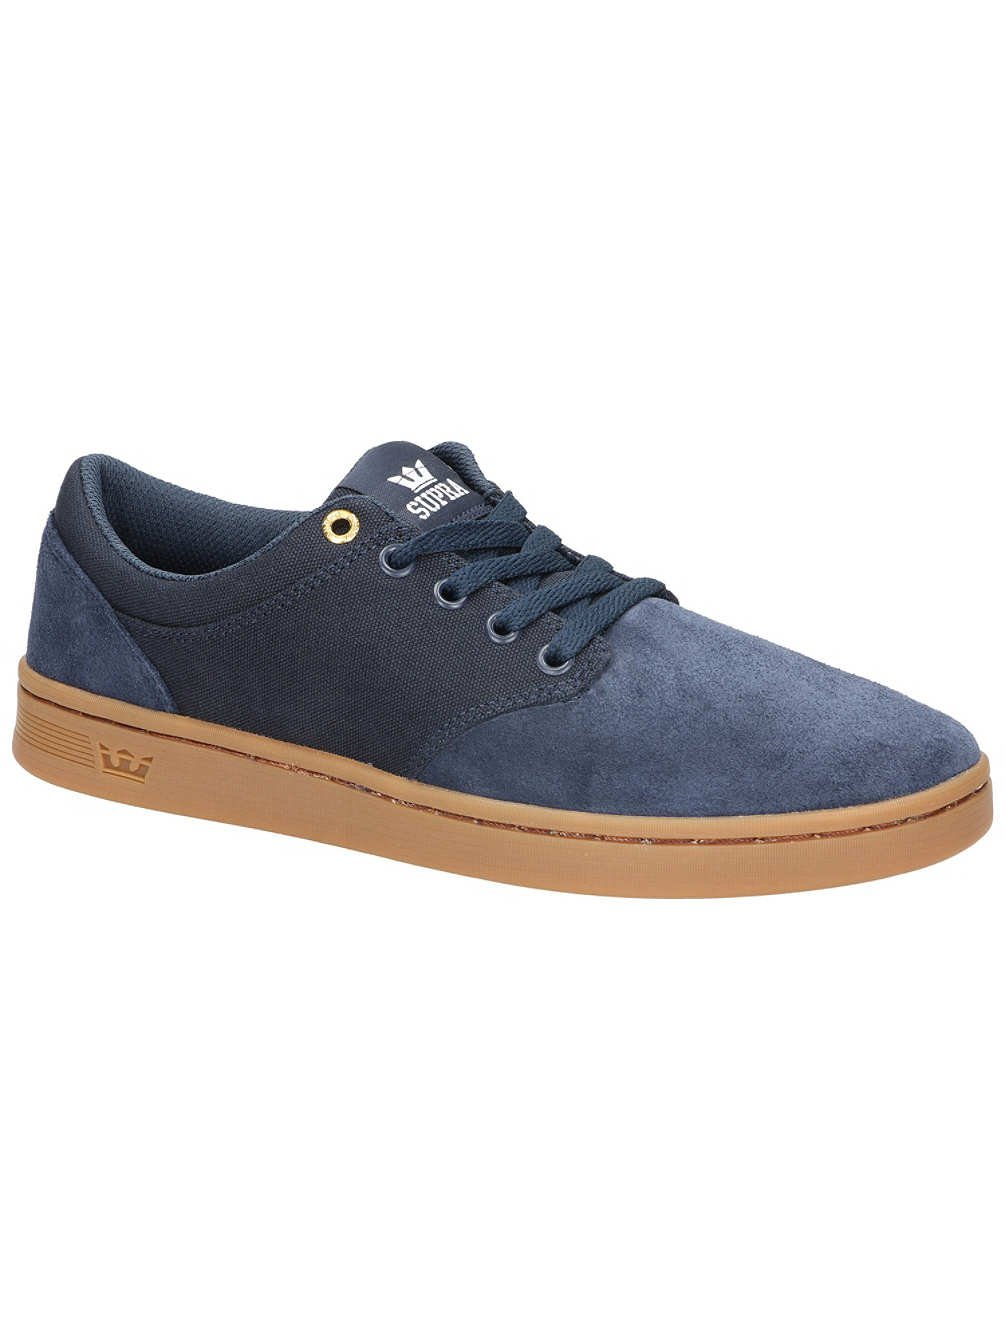 Supra Chino Court Skate Shoe 11.5 D(M) US|Midnight/Light Gum